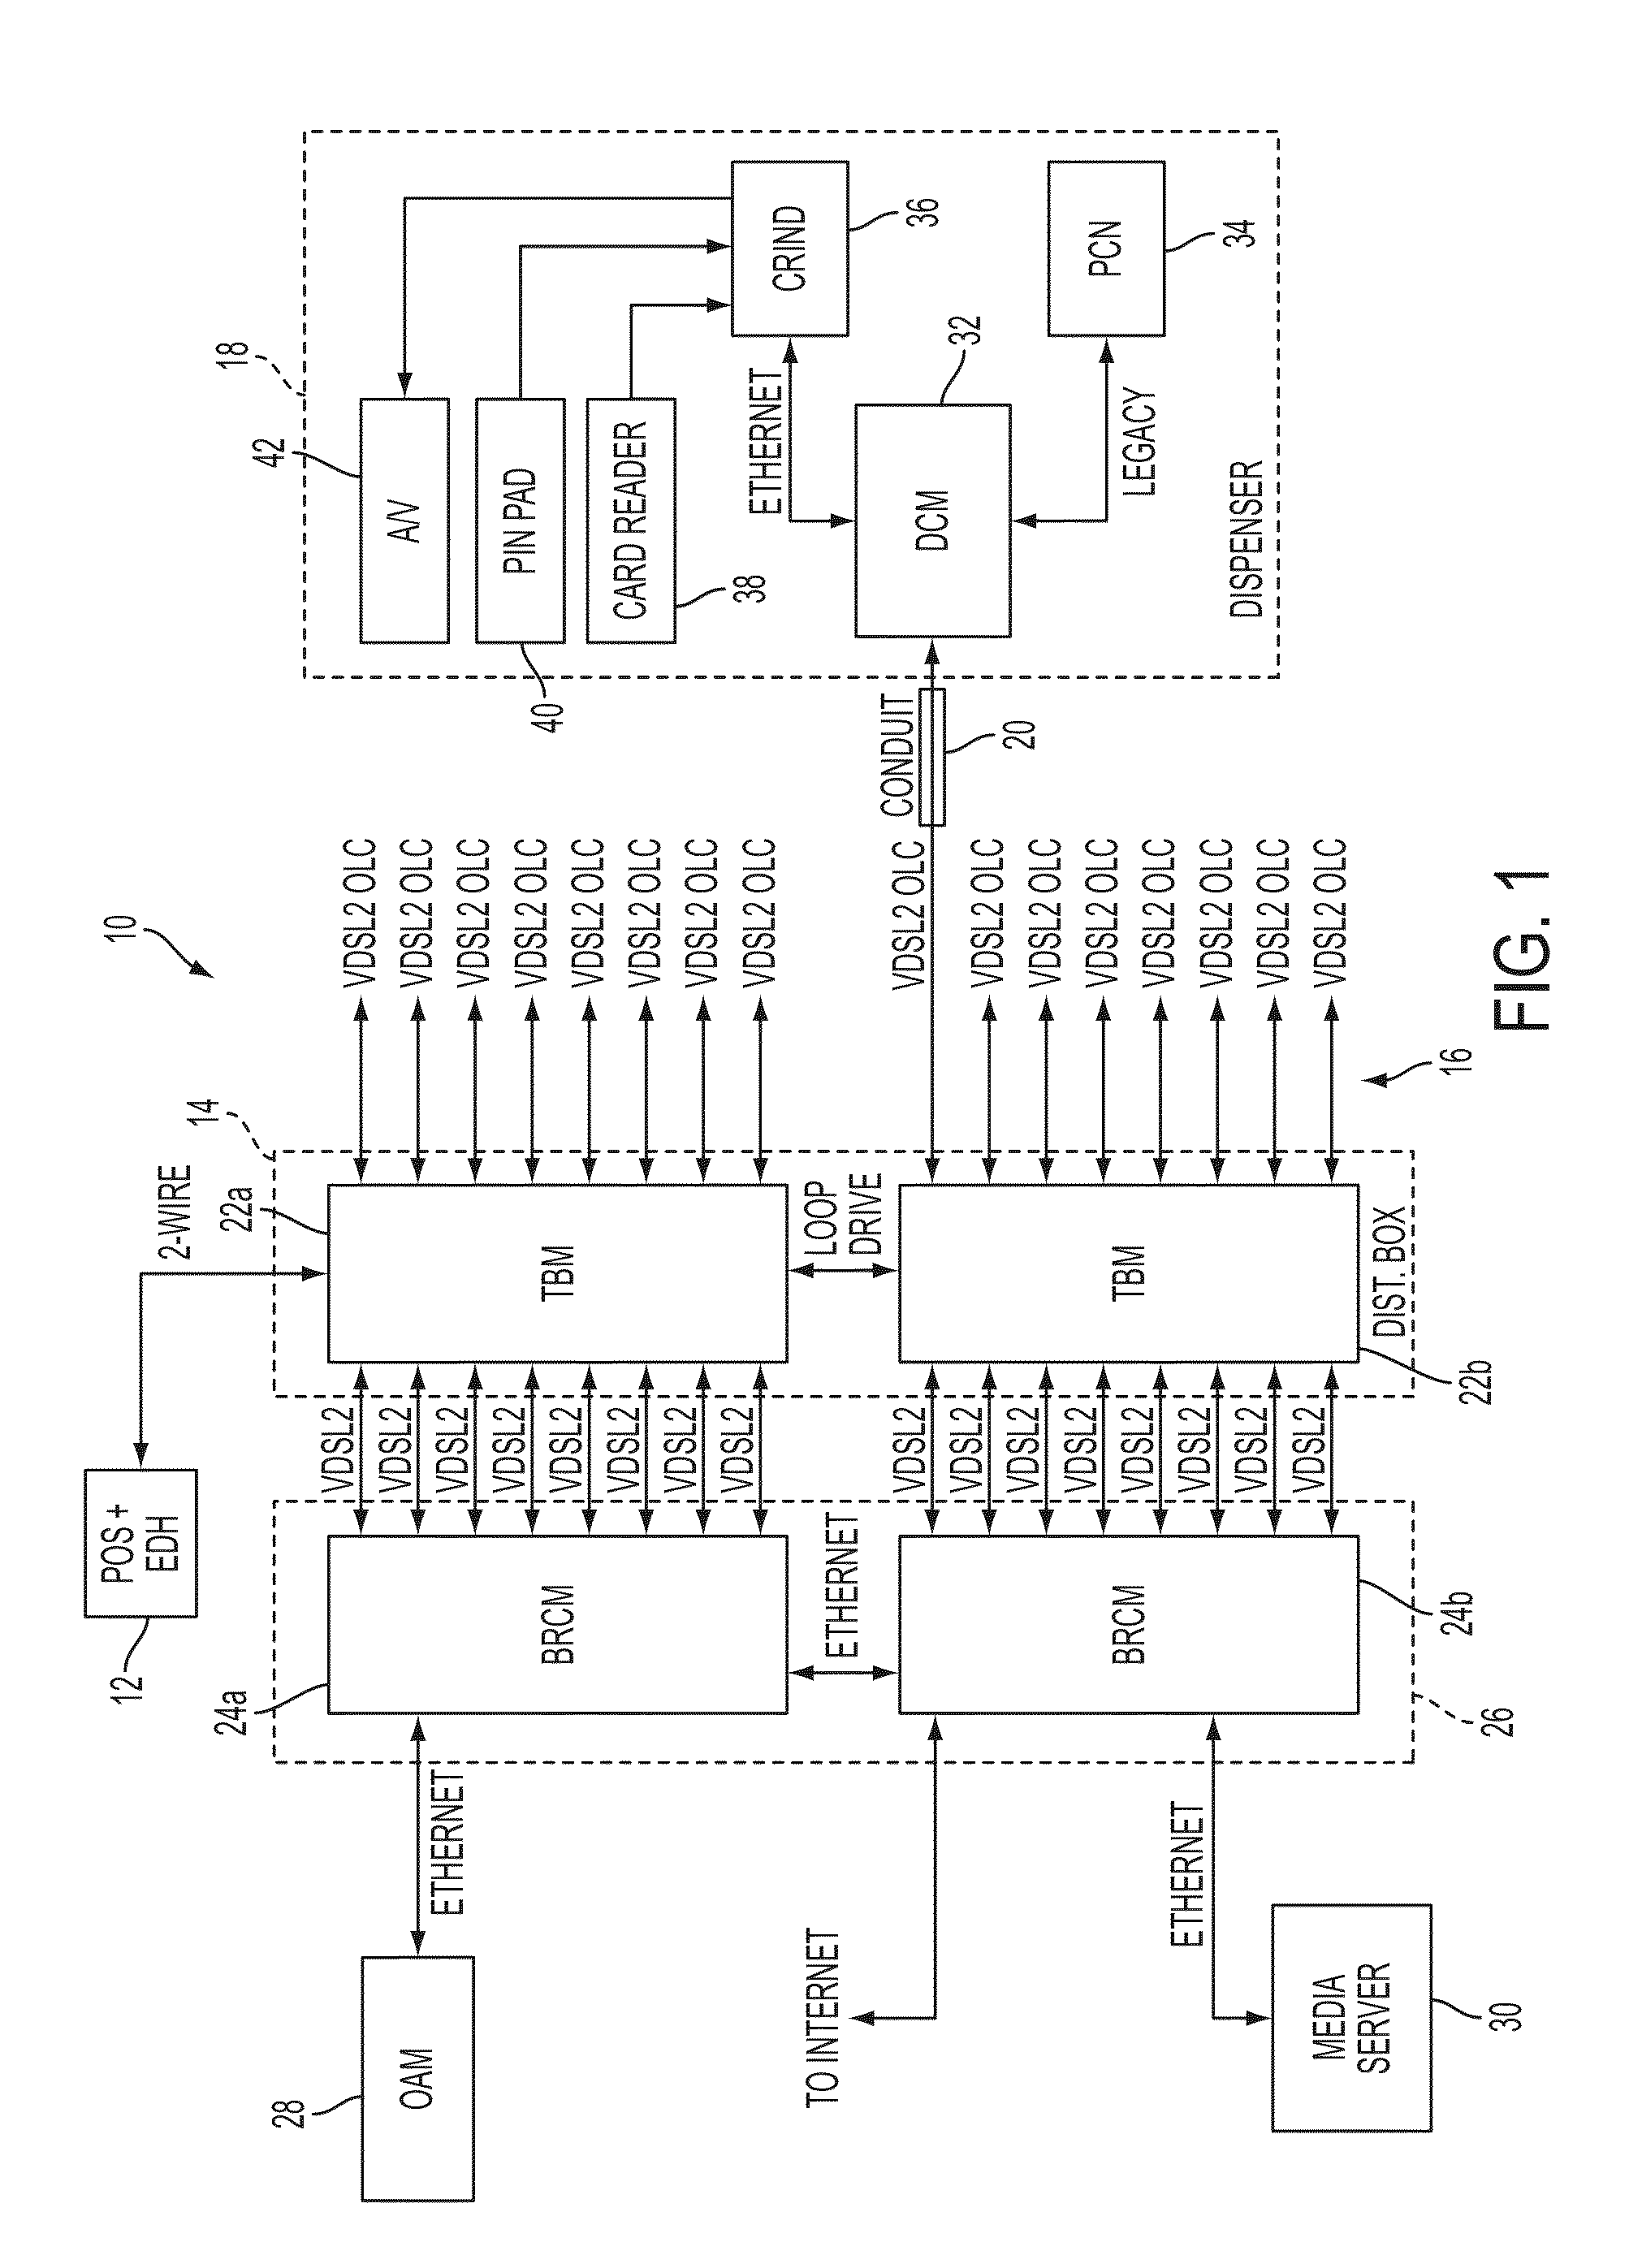 US20130121428A1 20130516 D00001 patent us20130121428 fuel dispensing environment utilizing gilbarco advantage wiring diagram at arjmand.co